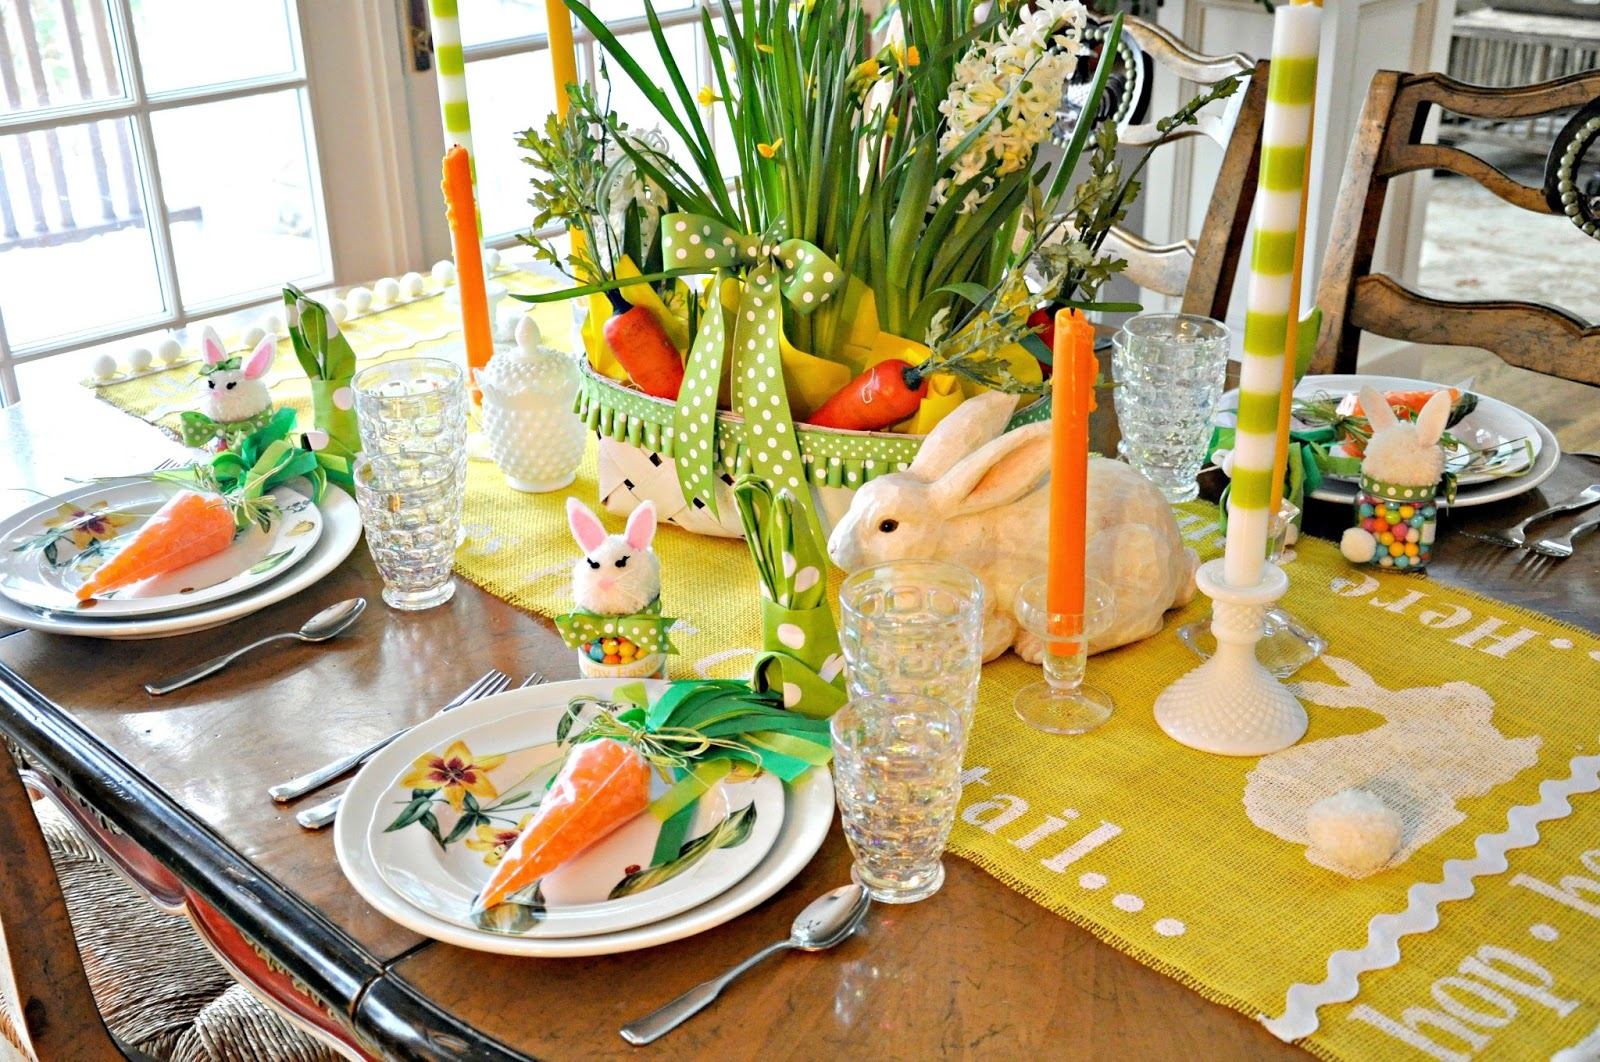 Serendipity Refined Blog: Easter Table Setting